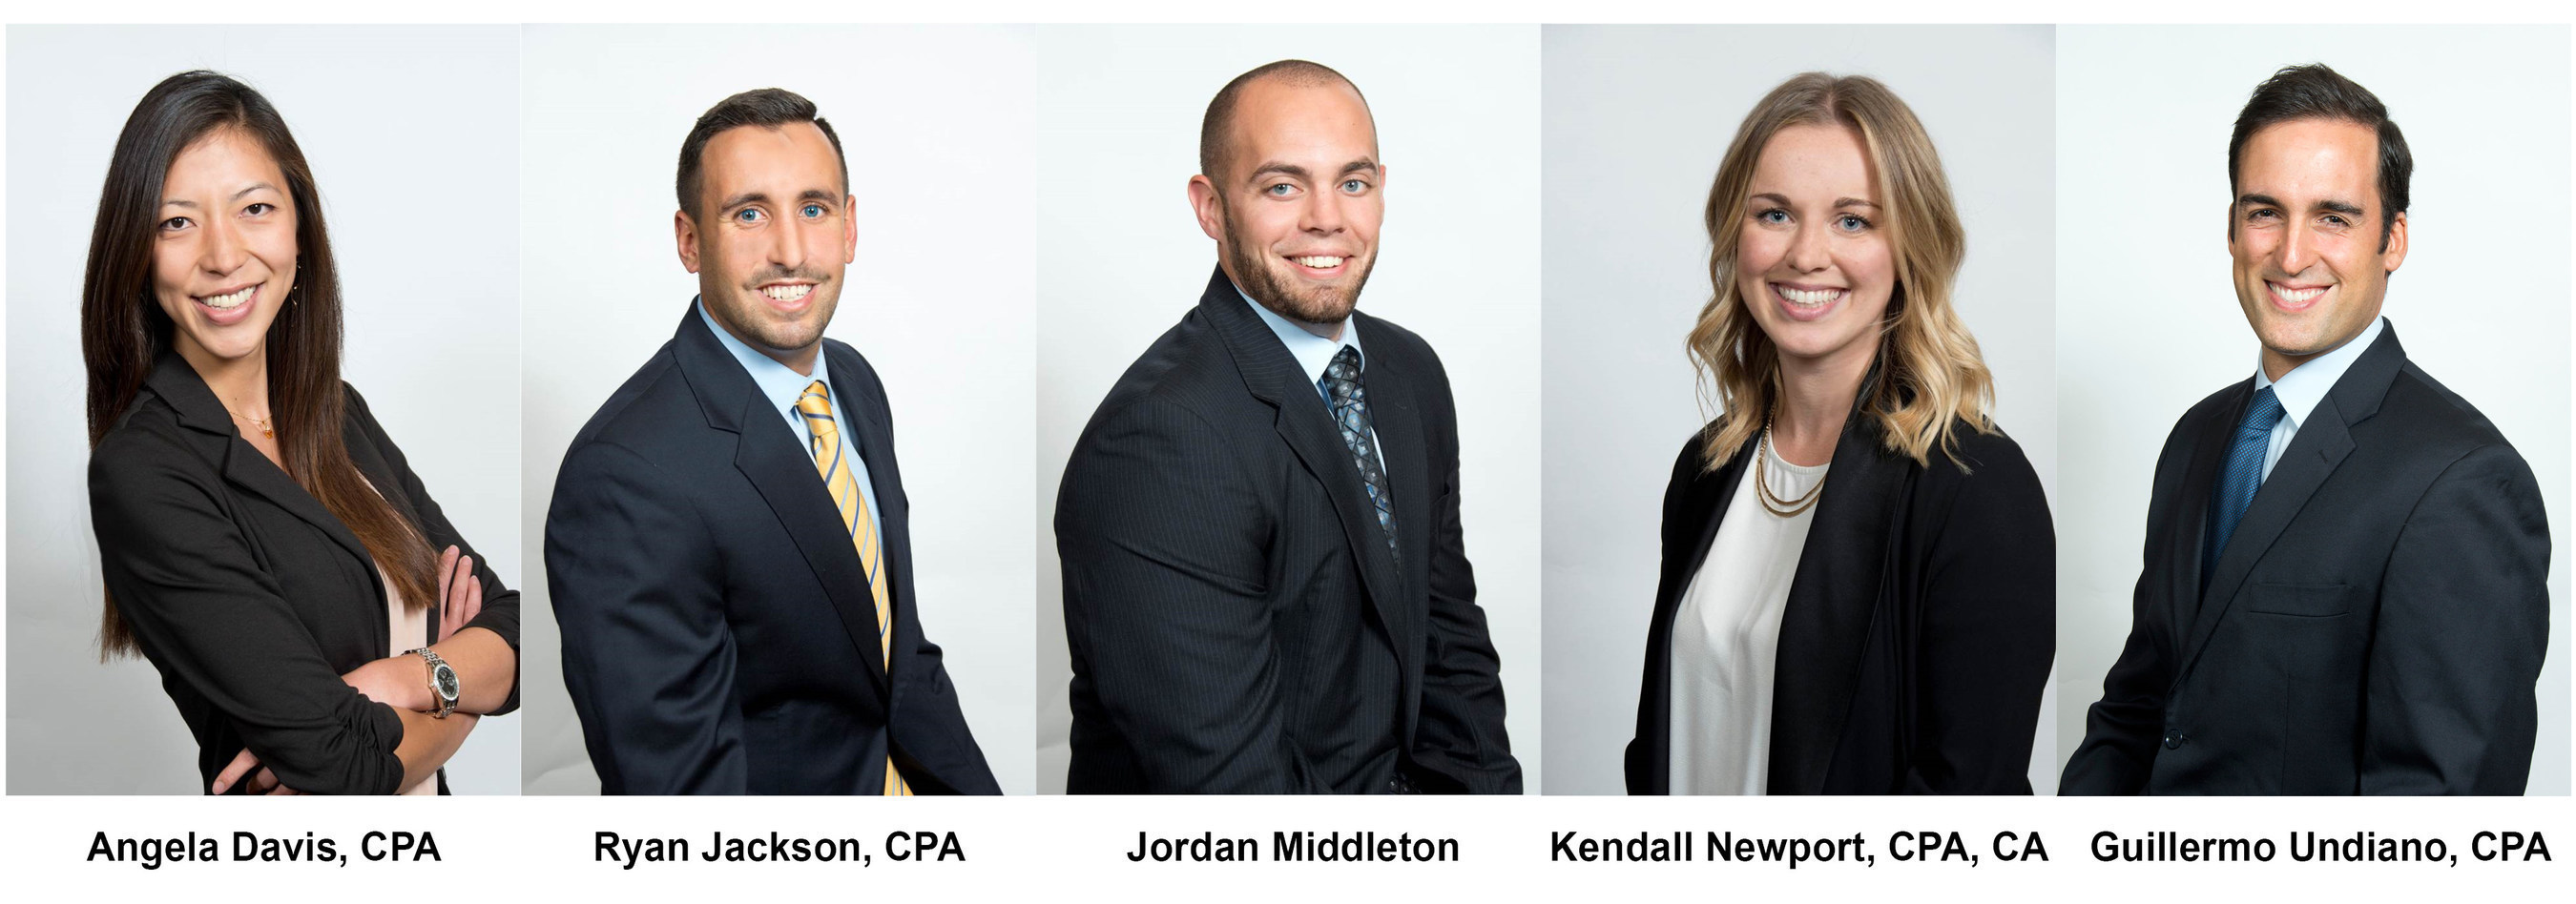 The Siegfried Group Welcomes New Professionals from the Denver, Los Angeles and South Florida